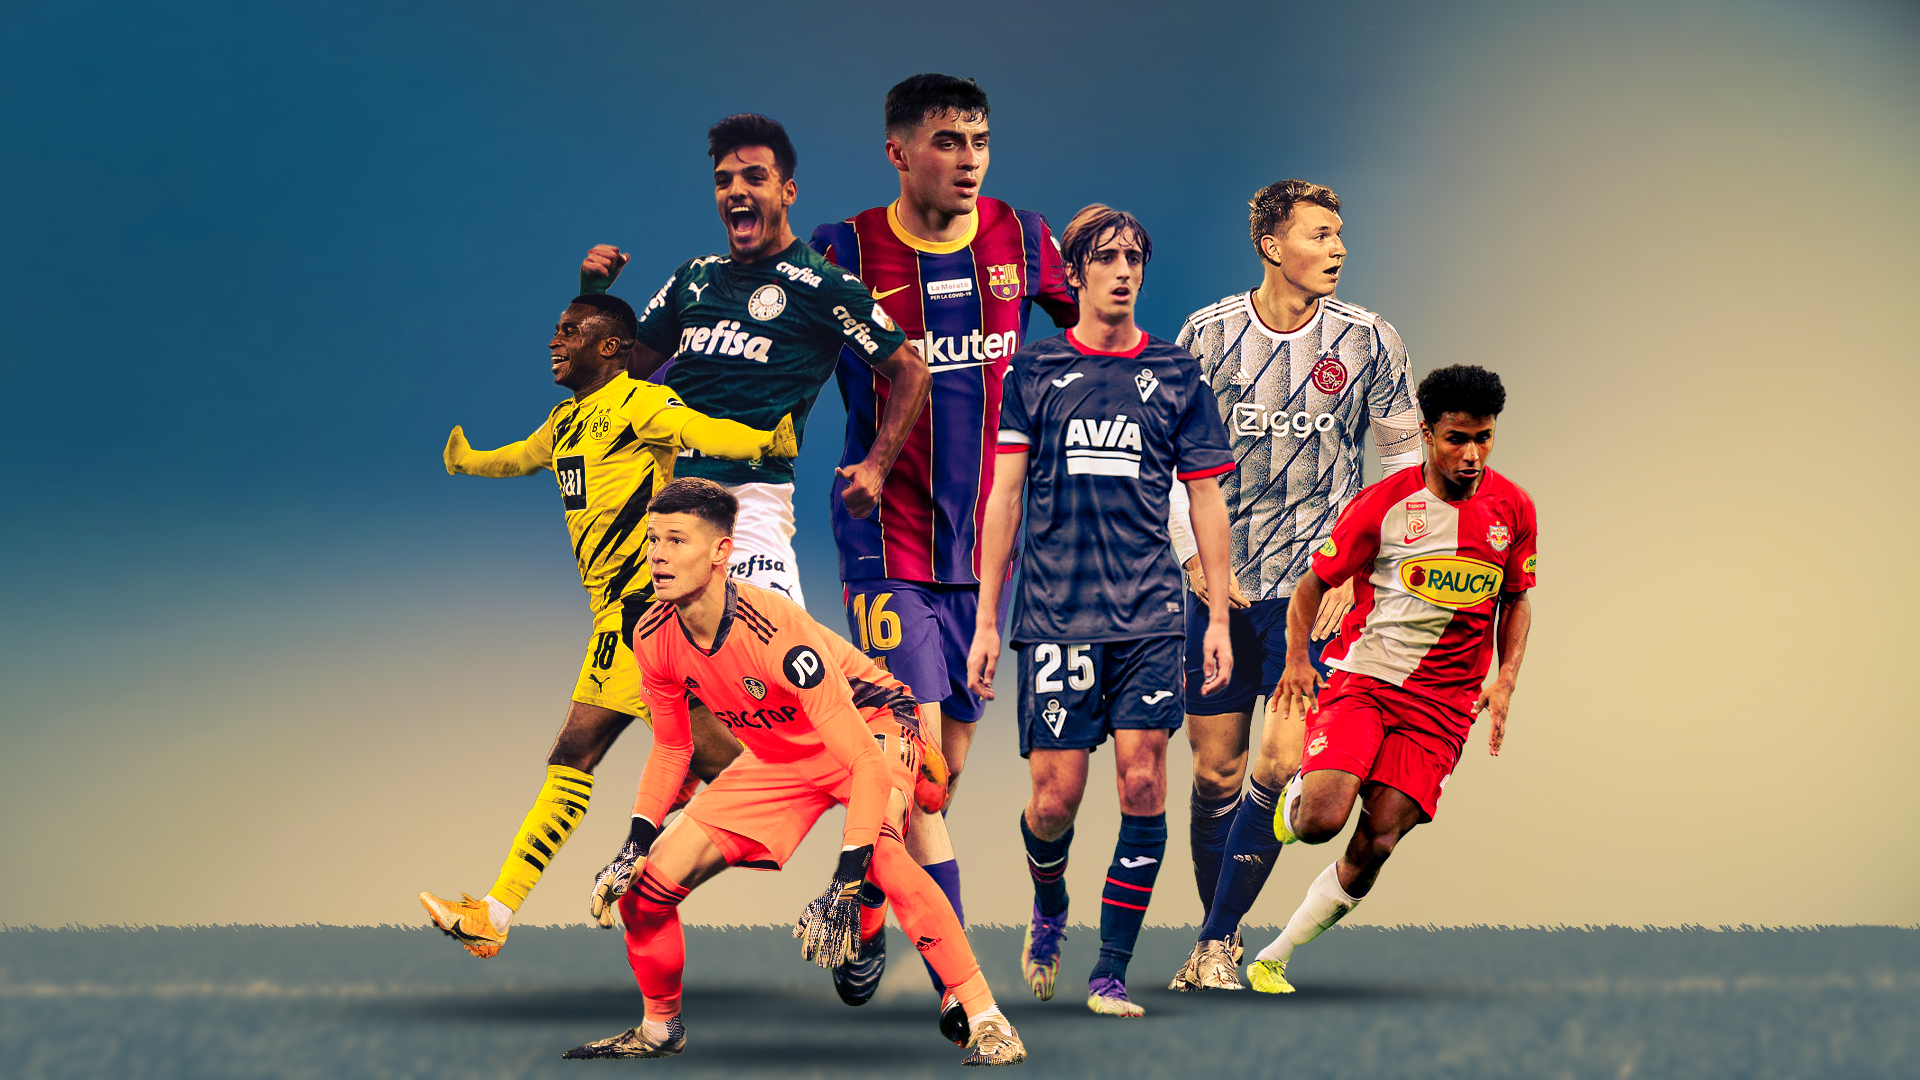 Pedri, Moukoko and Adeyemi among the 21 Under-21 talents to watch in 2021